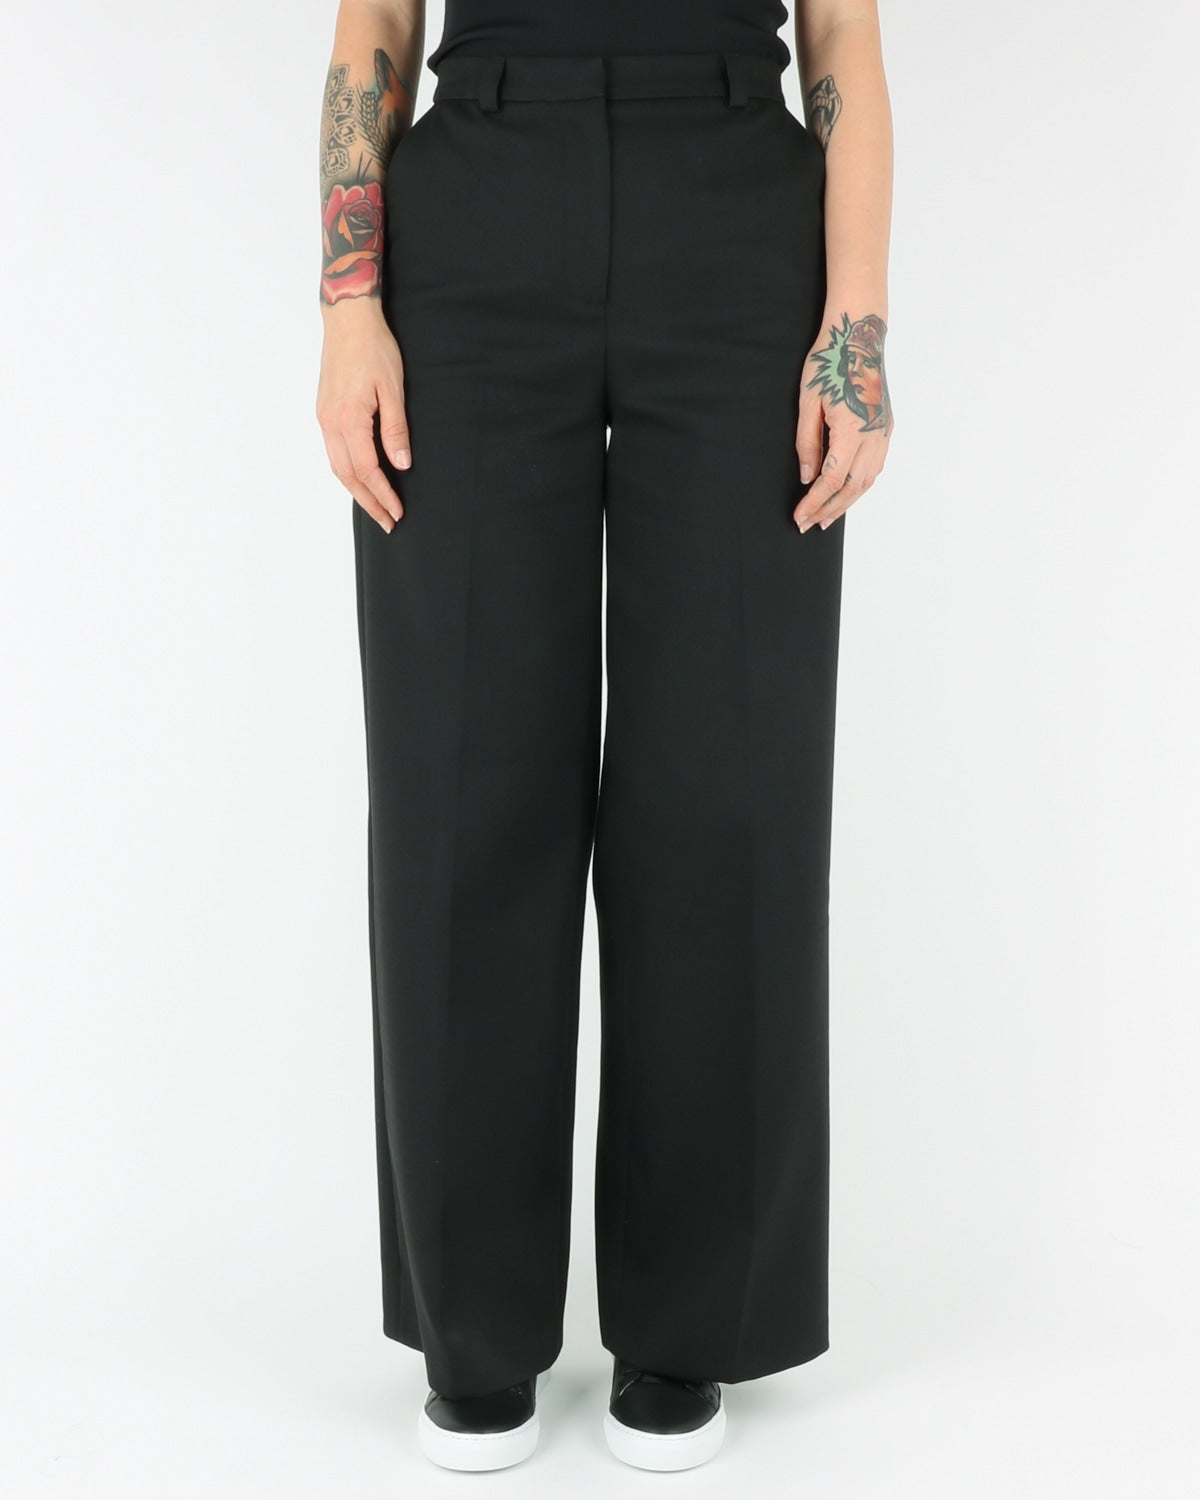 libertine libertine_restricted trousers_black_view_2_2